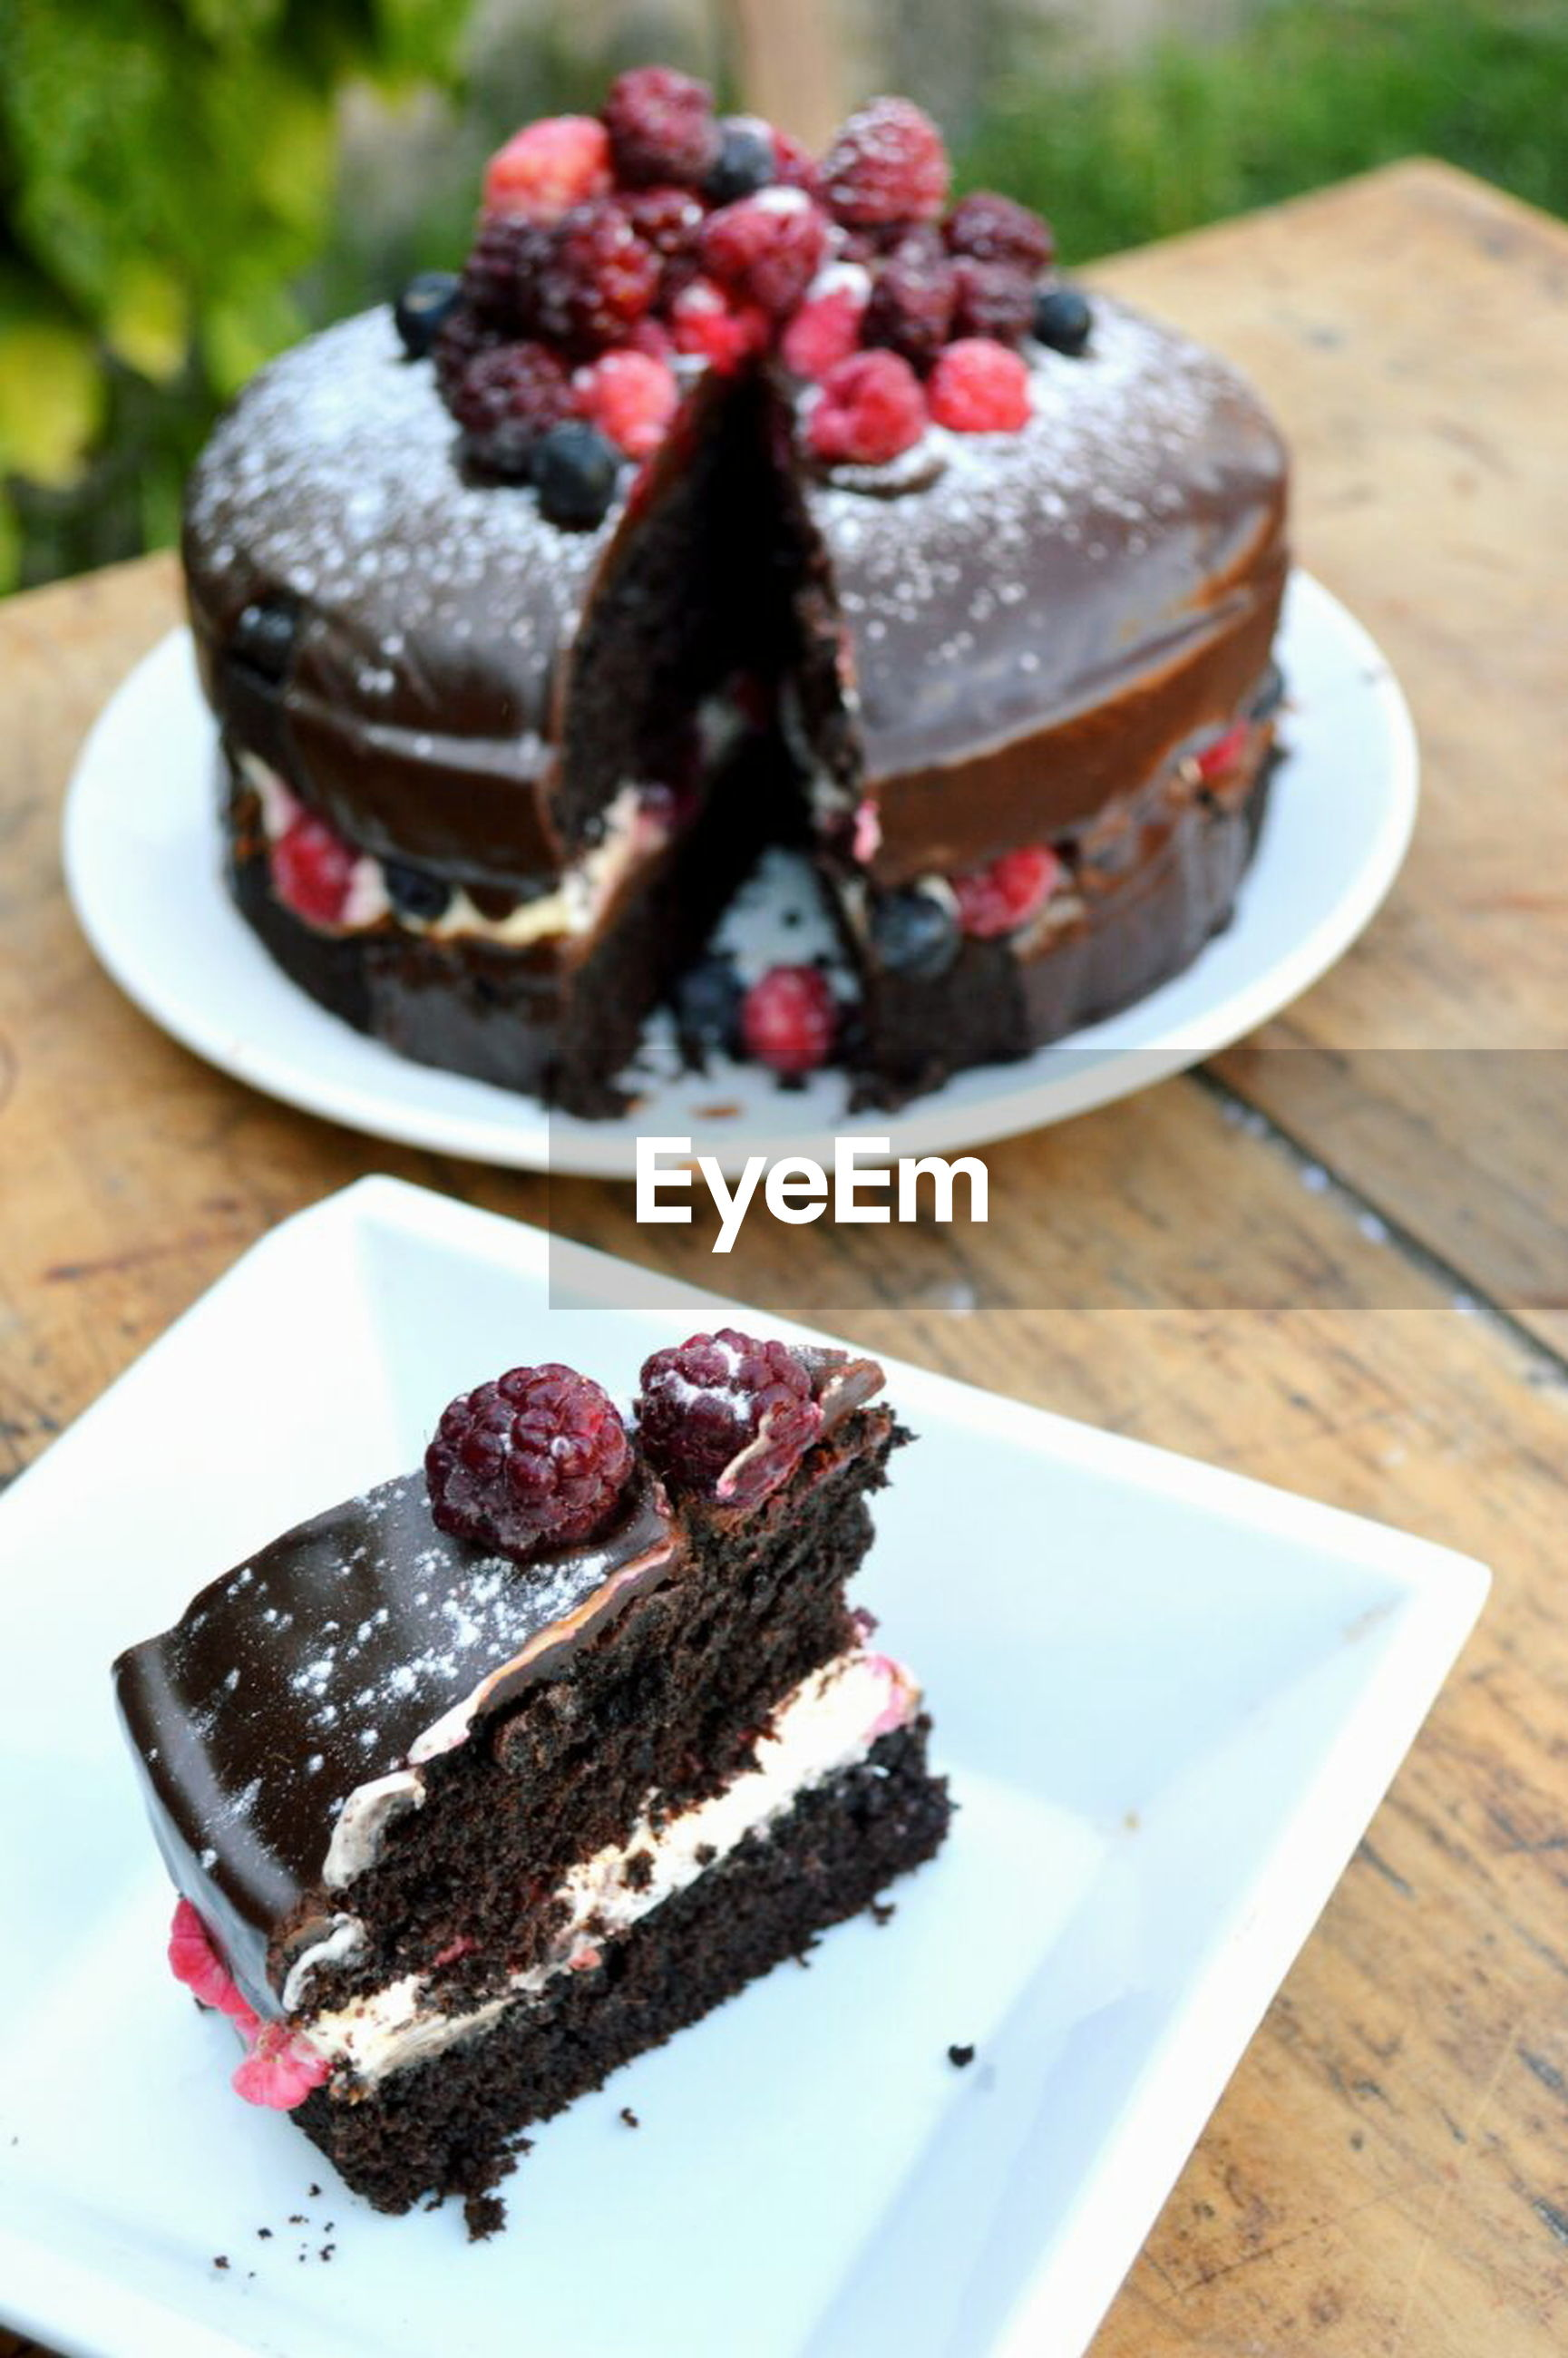 sweet food, indulgence, dessert, food and drink, temptation, cake, table, food, unhealthy eating, plate, freshness, ready-to-eat, still life, chocolate, chocolate cake, close-up, focus on foreground, serving size, no people, brownie, indoors, dessert topping, cheesecake, day, pastry, ice cream